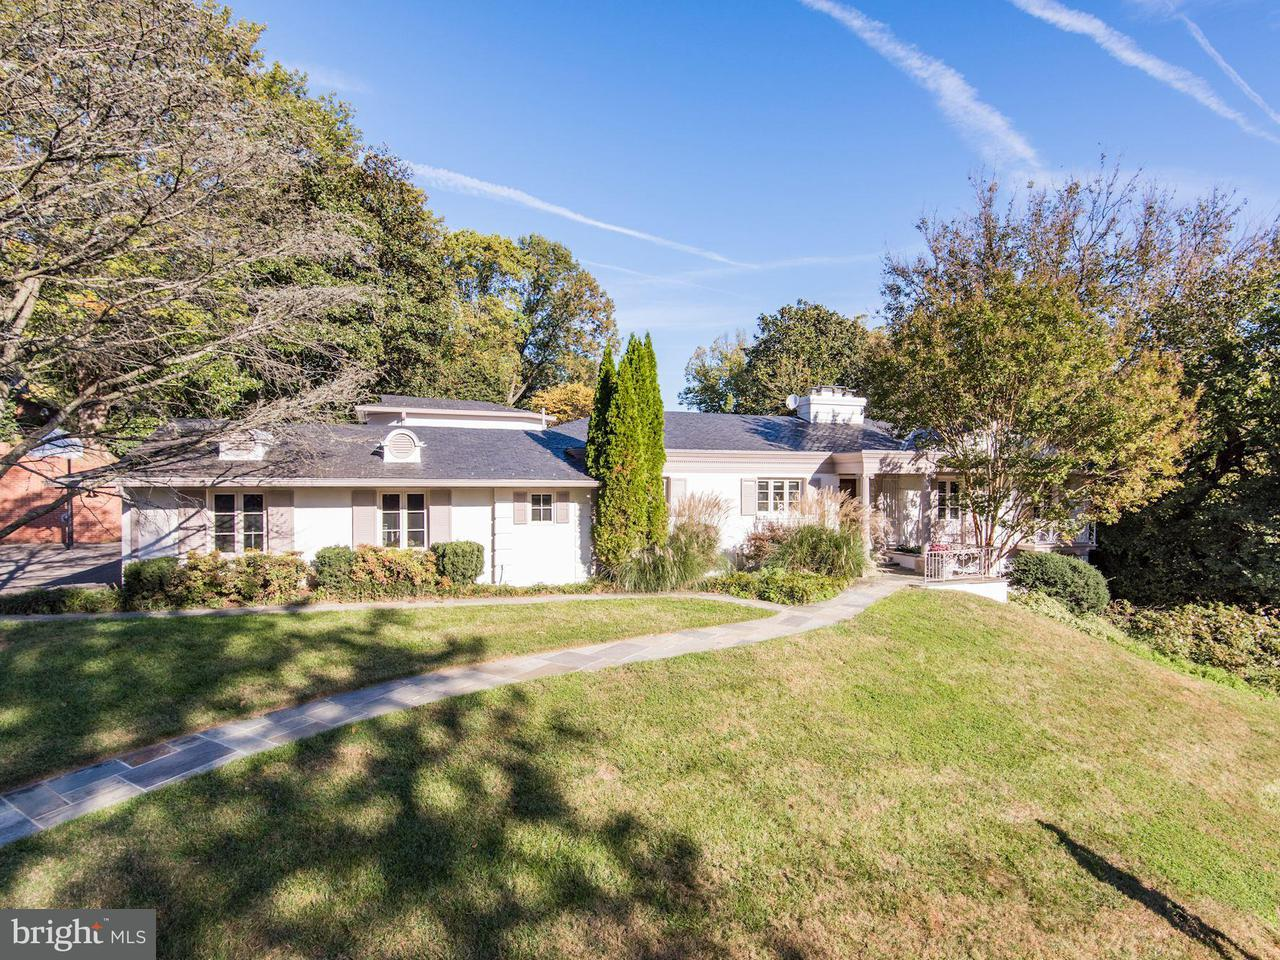 Single Family Home for Sale at 2616 NELSON Street 2616 NELSON Street Arlington, Virginia 22207 United States